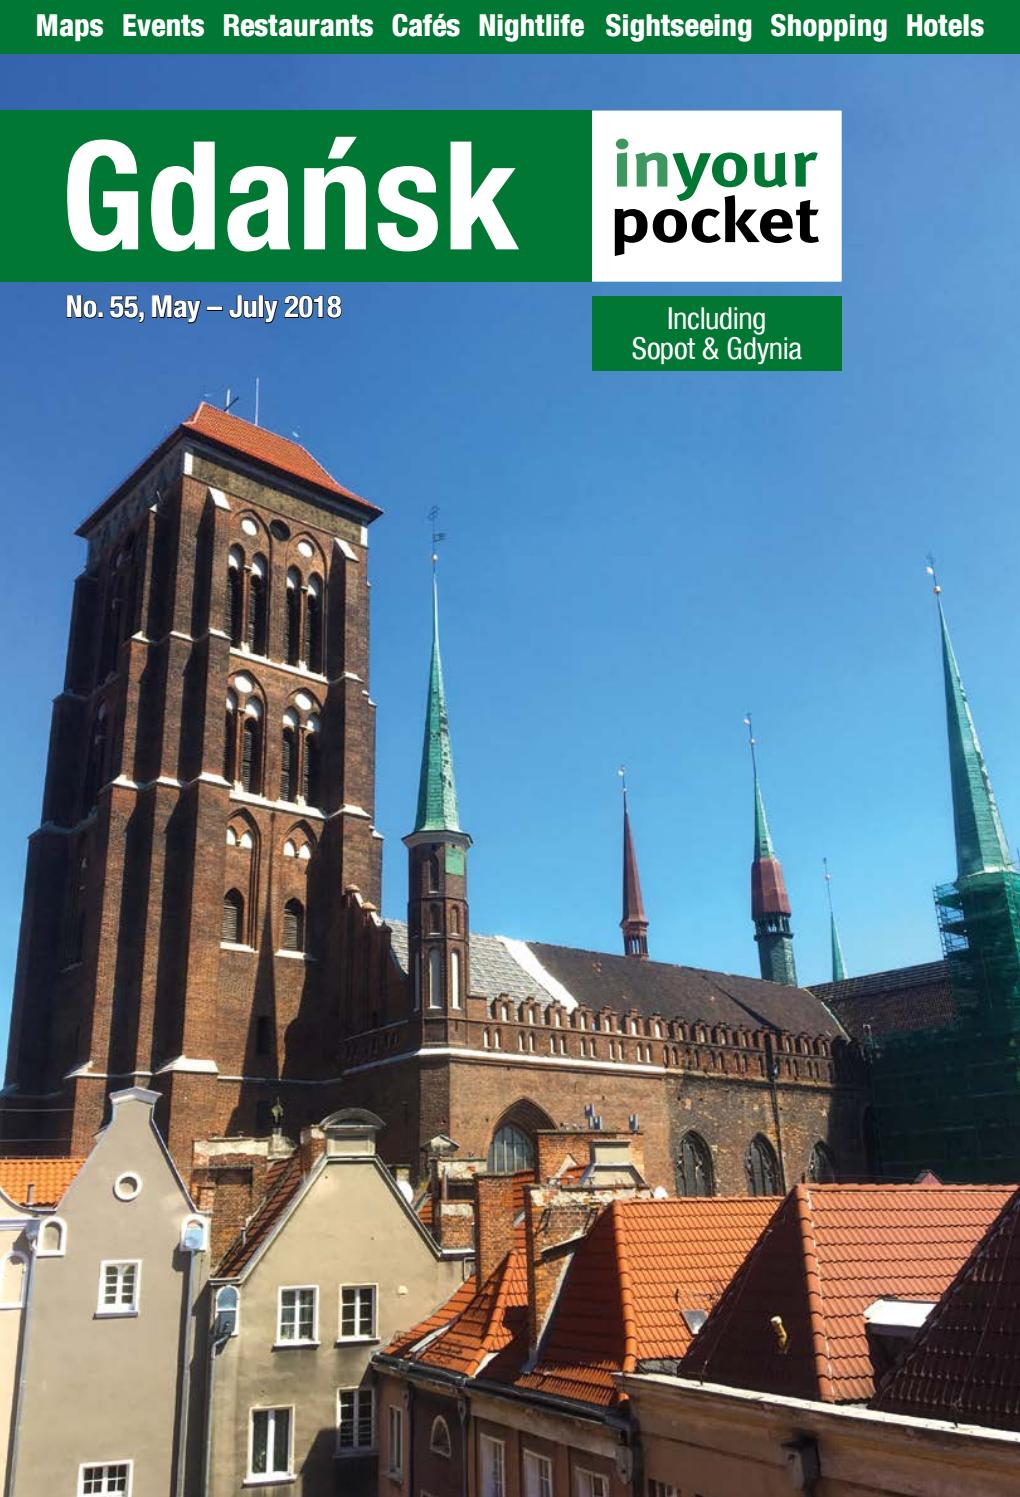 Gdansk In Your Pocket by In Your Pocket - issuu